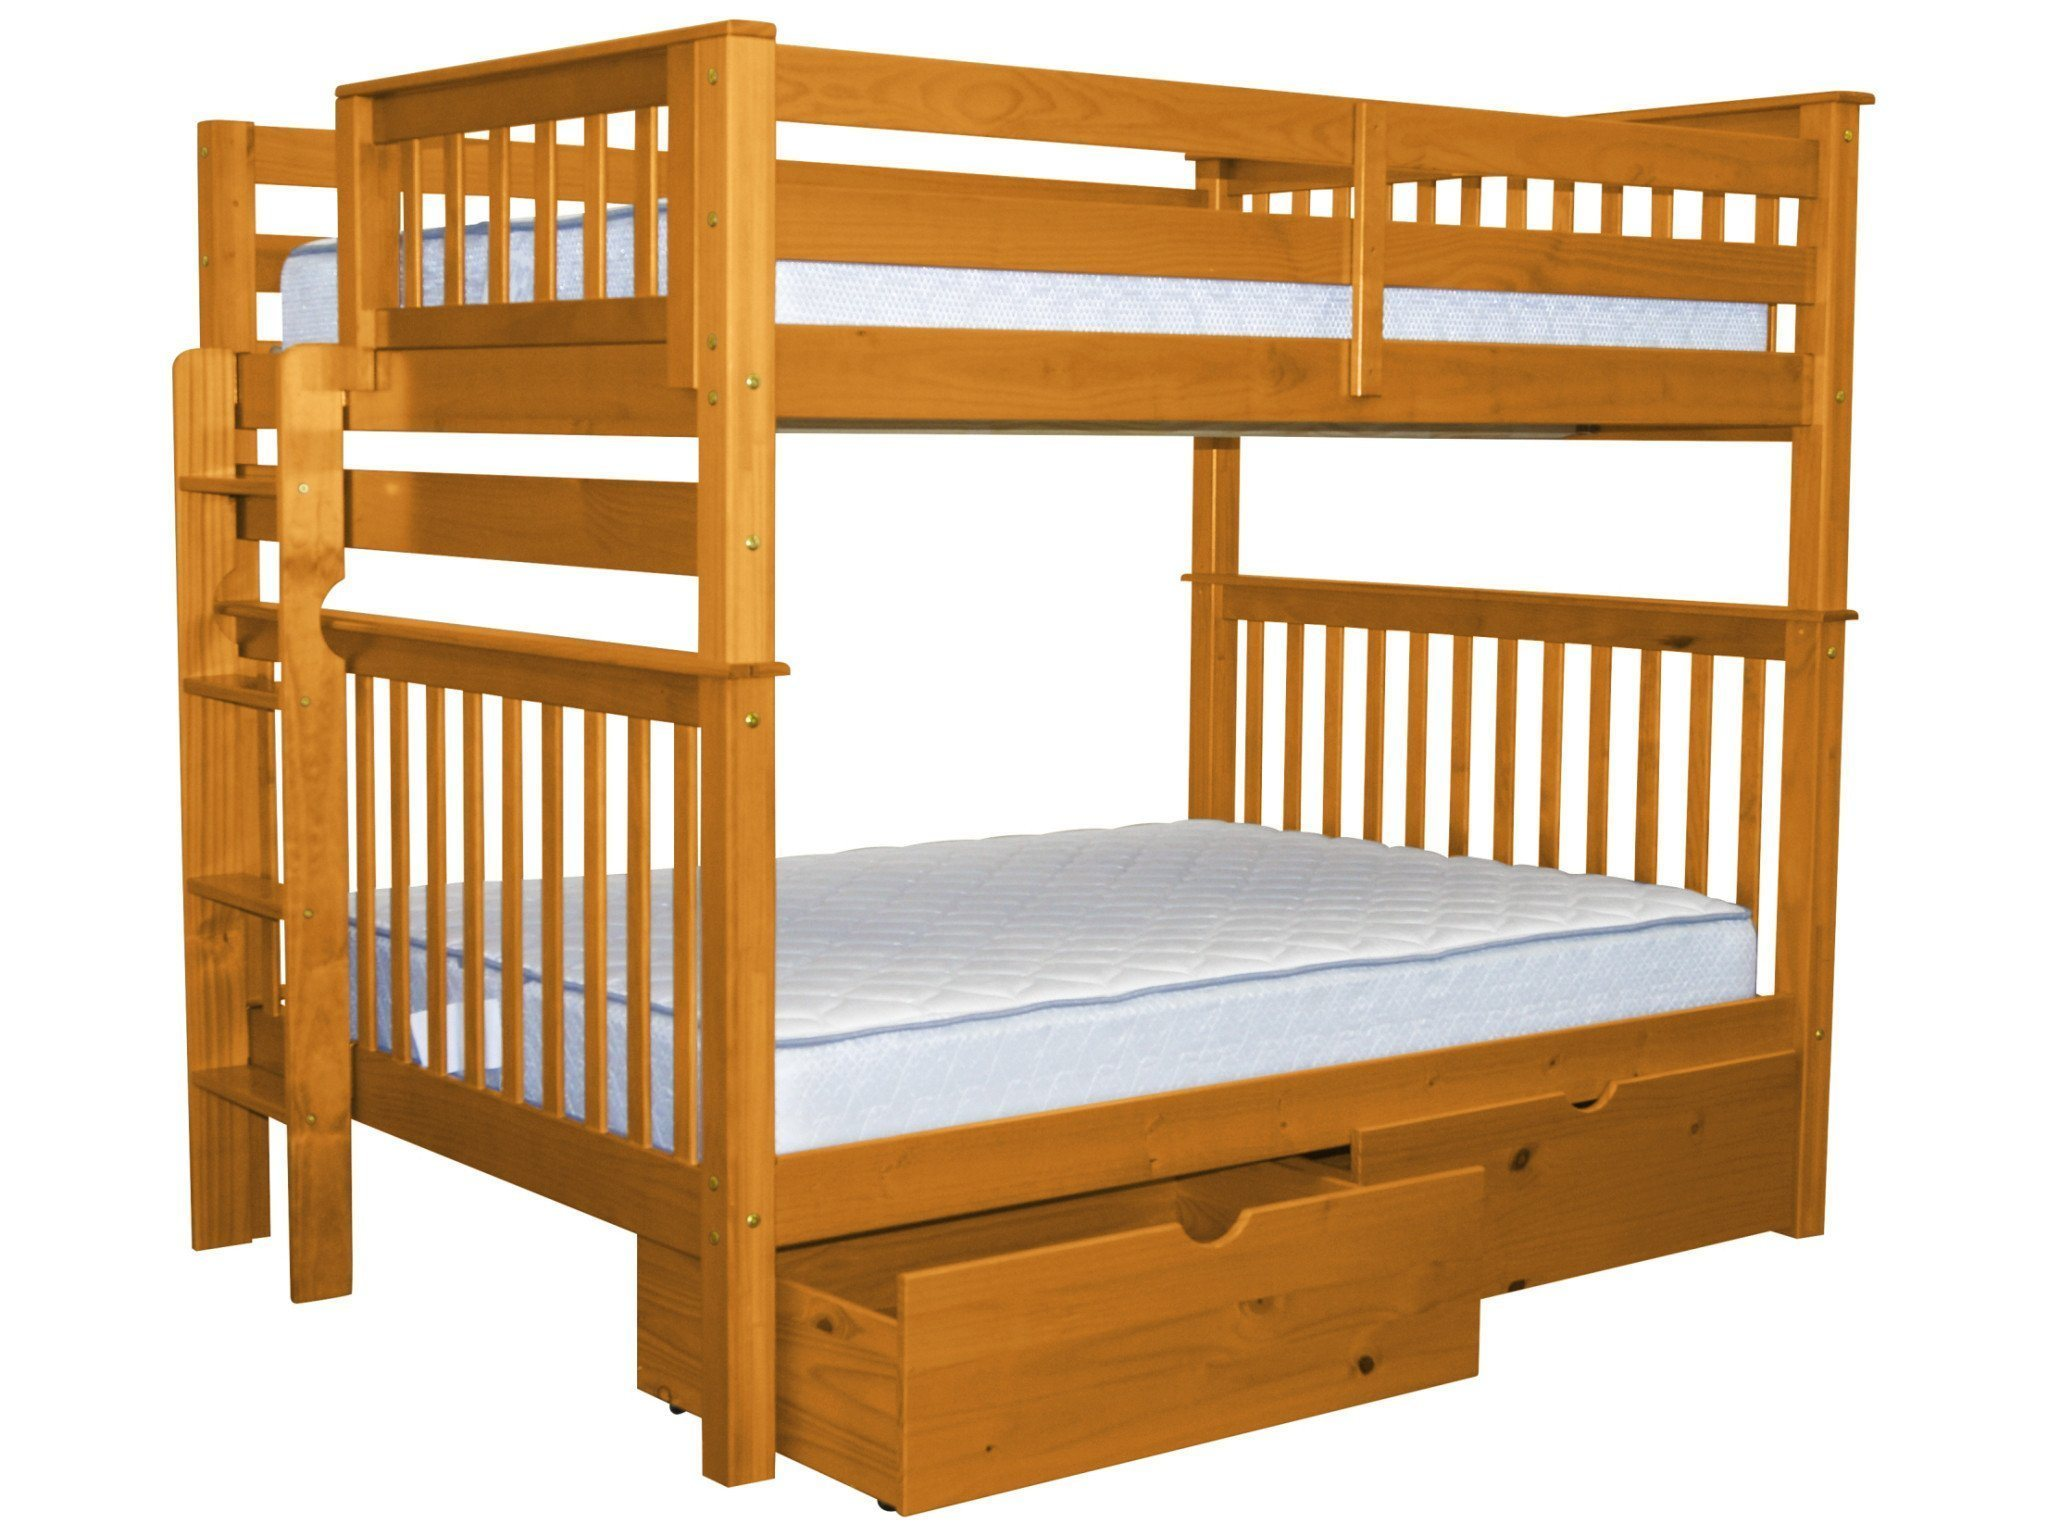 Bedz King Bunk Beds Full Over Full Mission Style With End